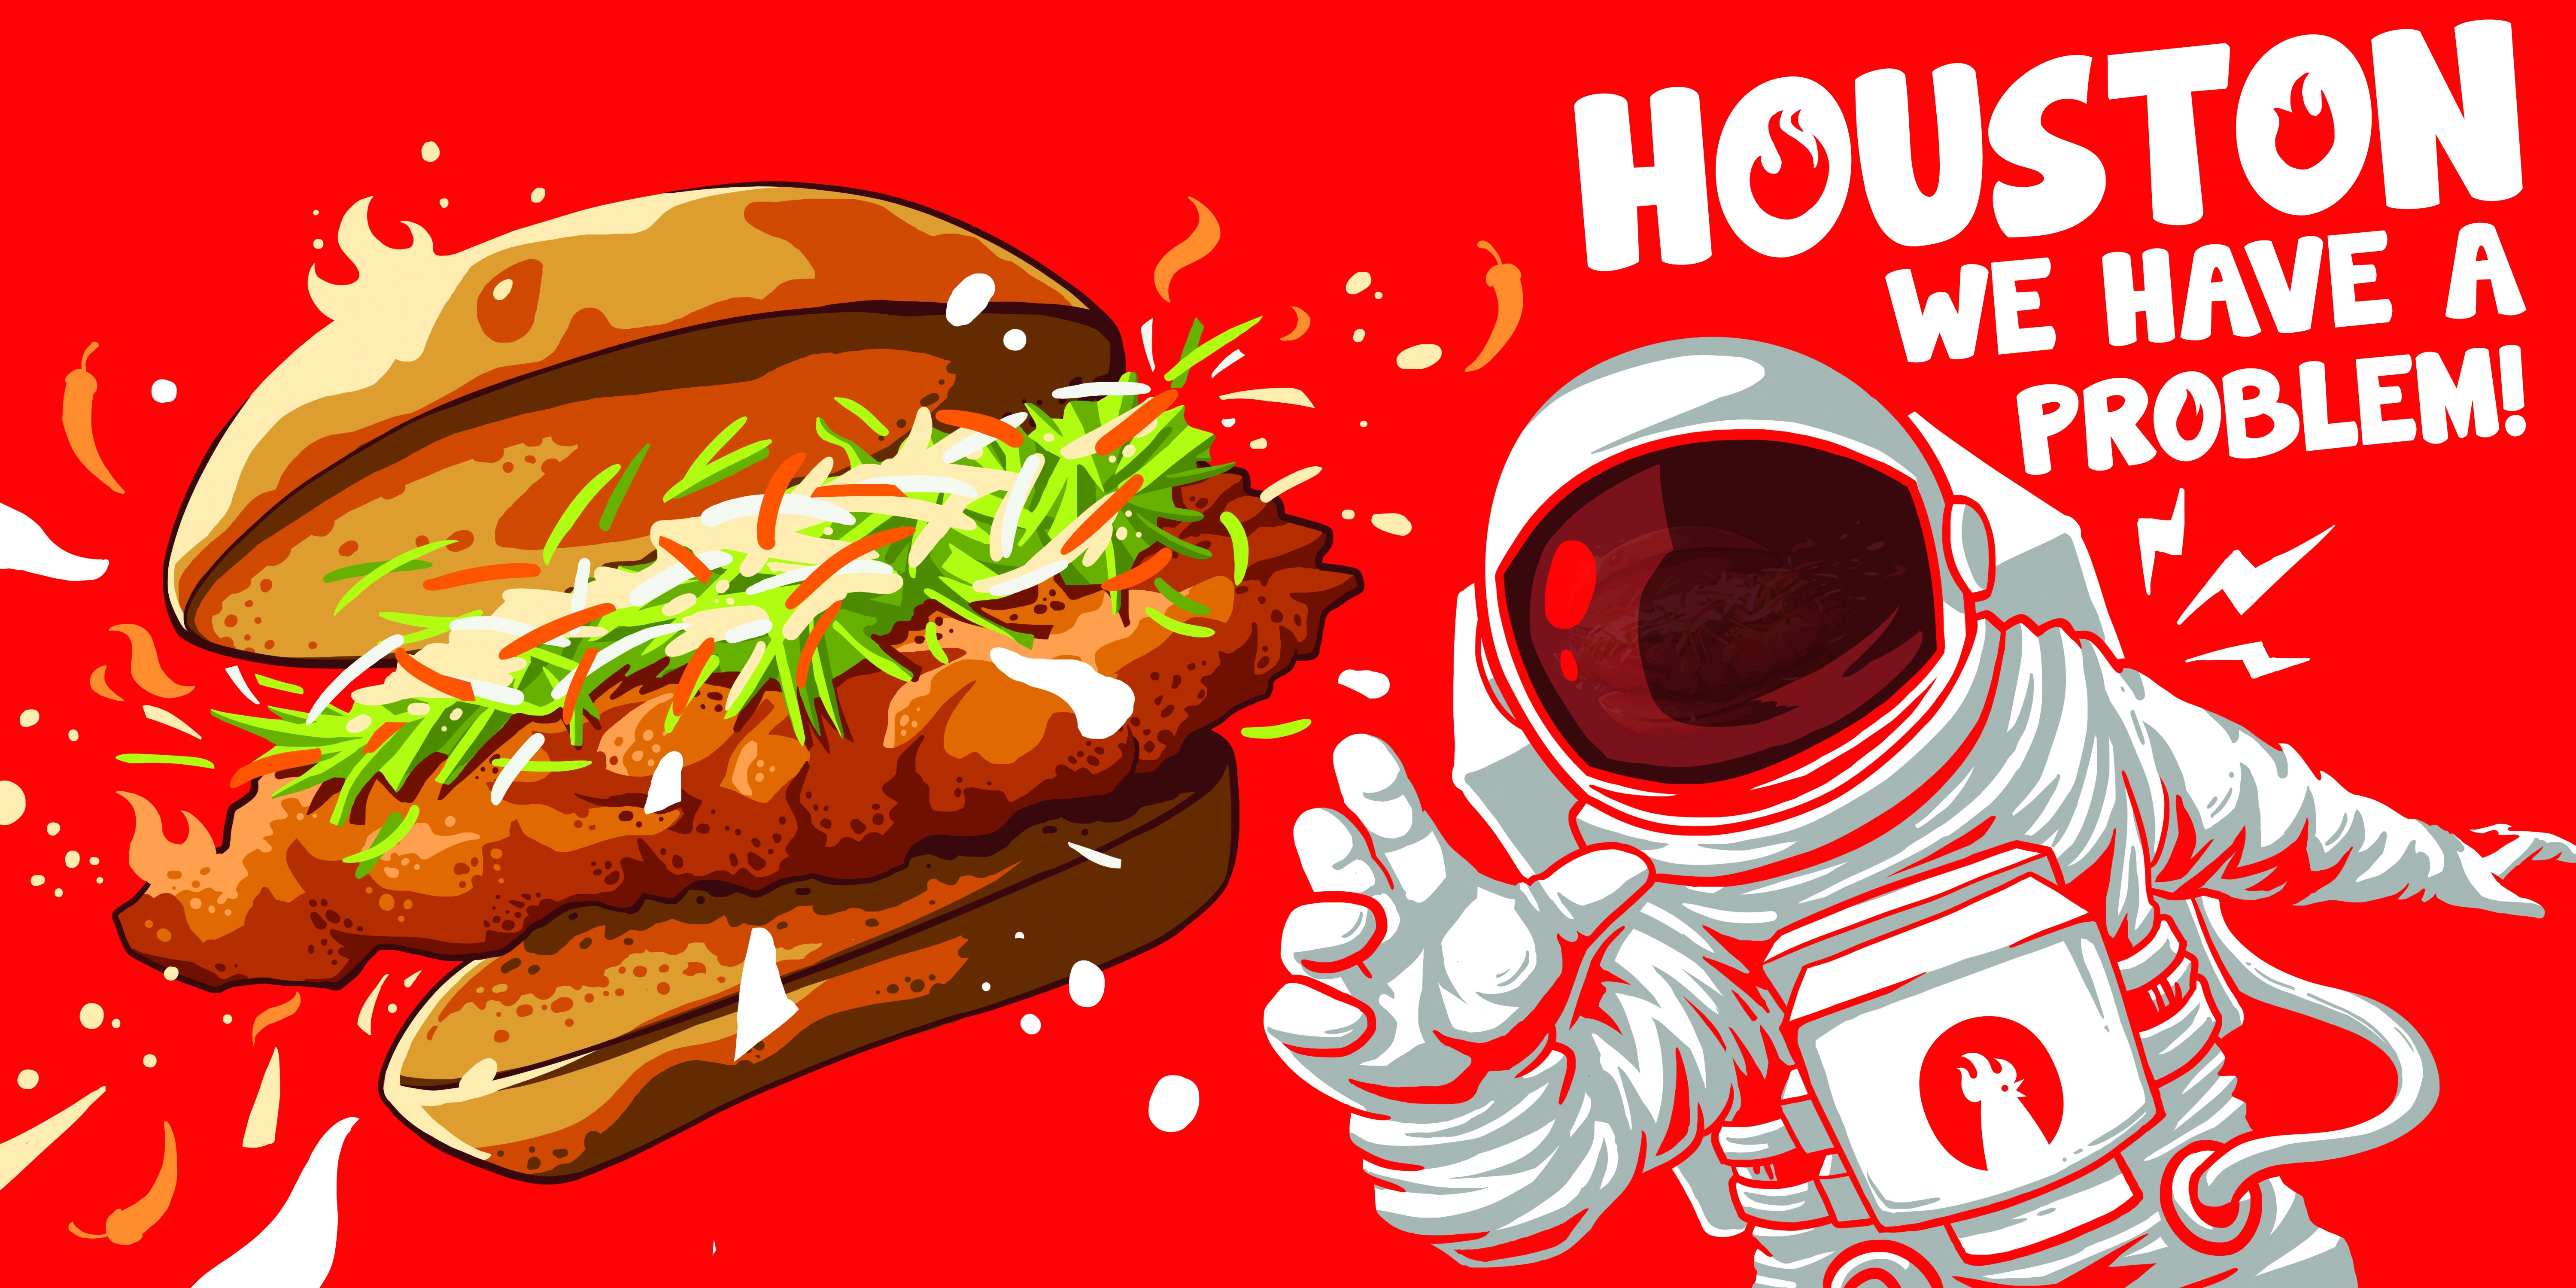 Fun billboard needed for restaurant that shows an astronaut pictured with a chicken sandwich